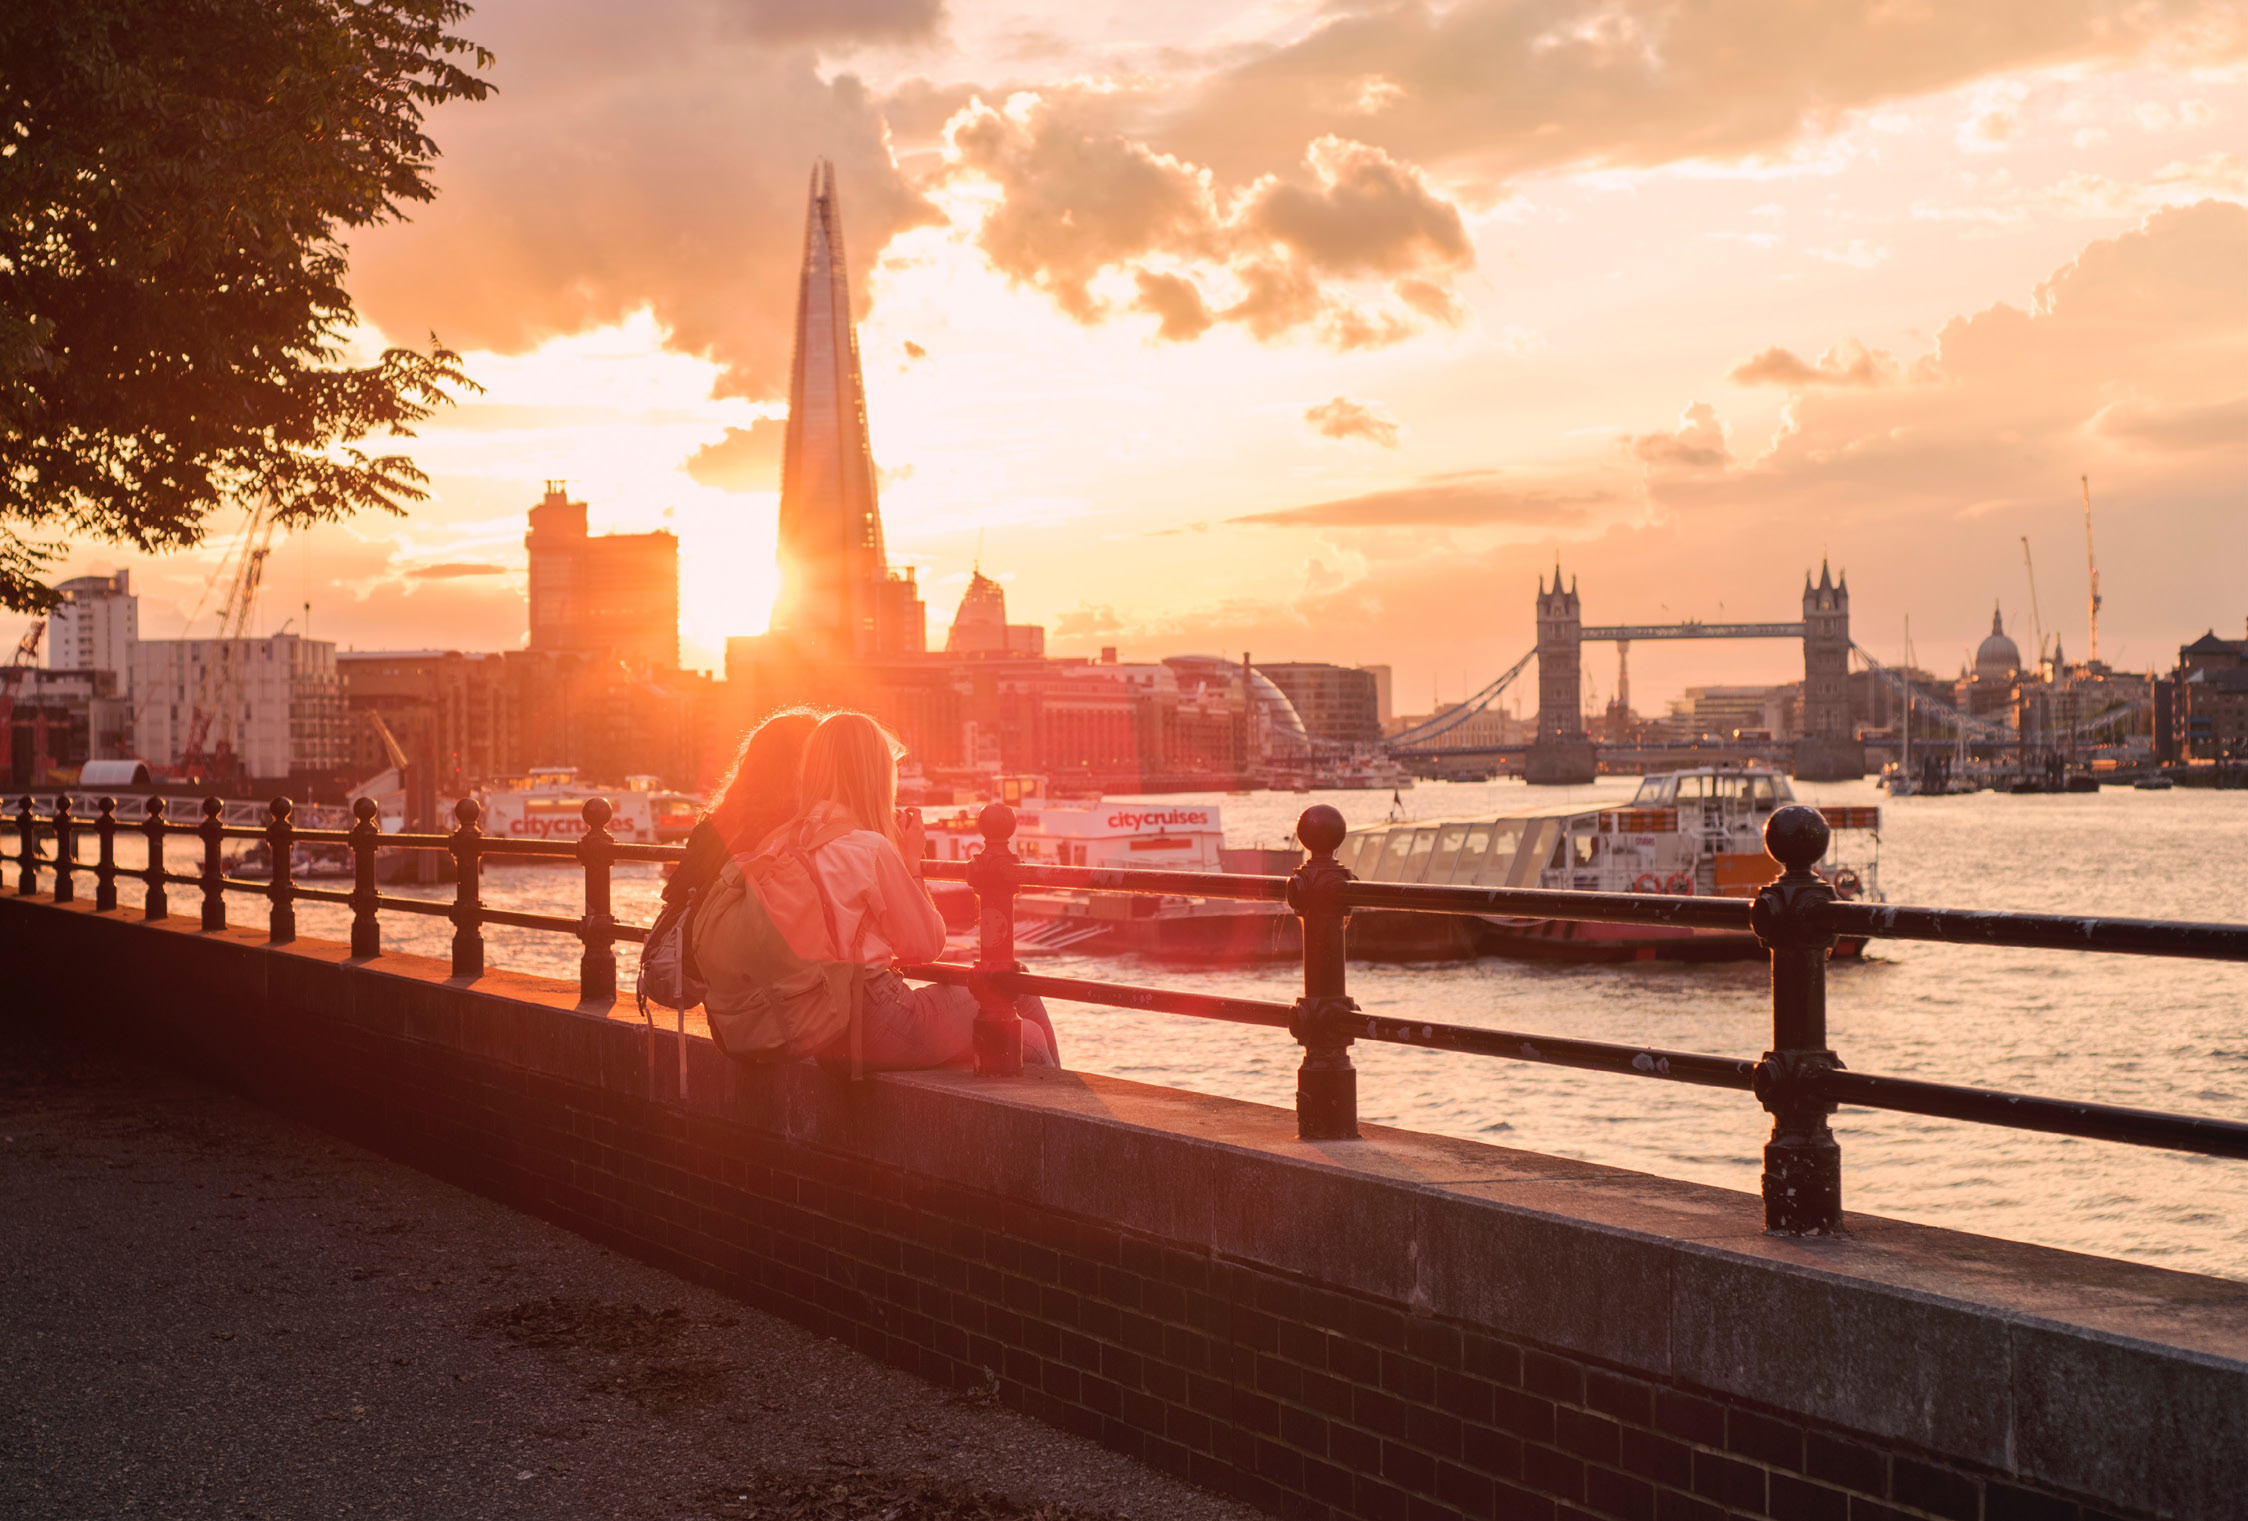 Central London sluggish as outskirts see solid growth